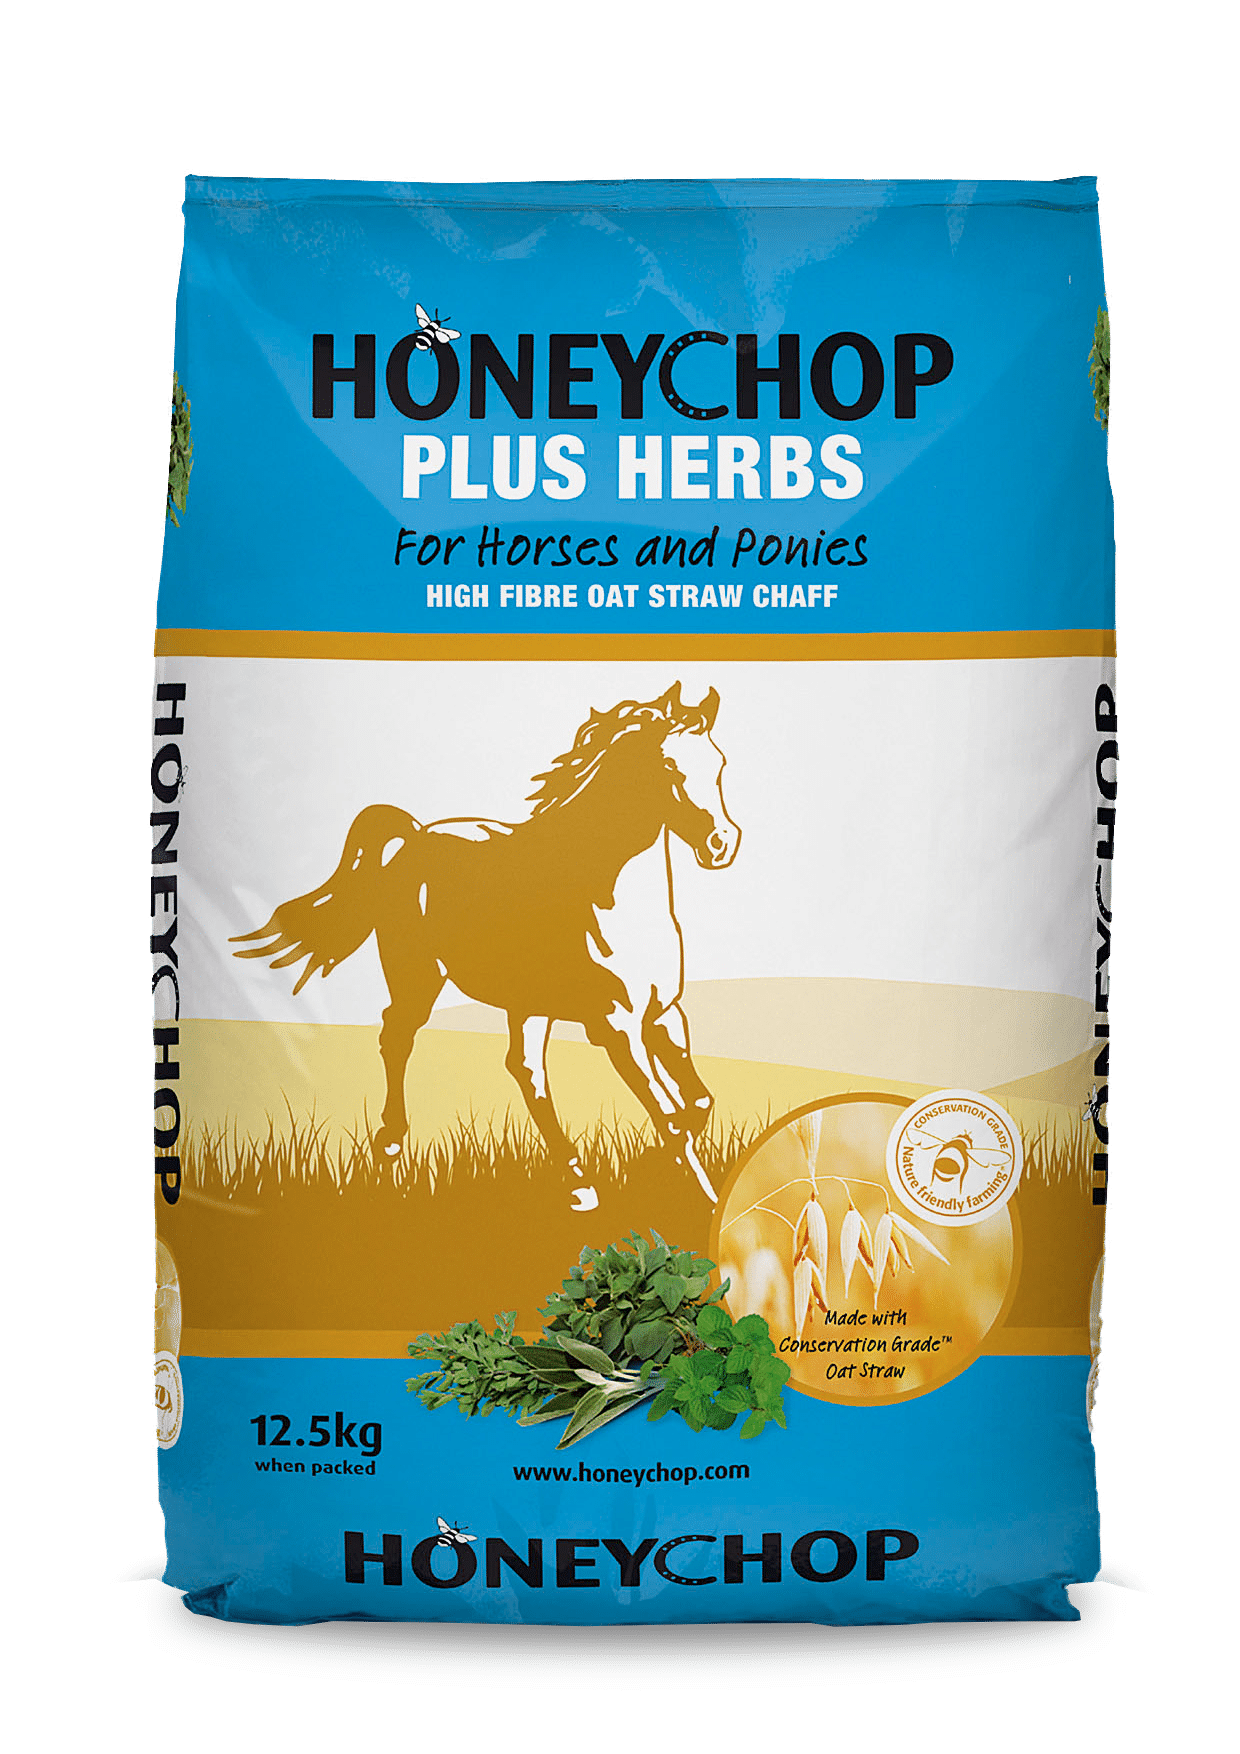 honeychop plus herbs, feeding the thoroughbred